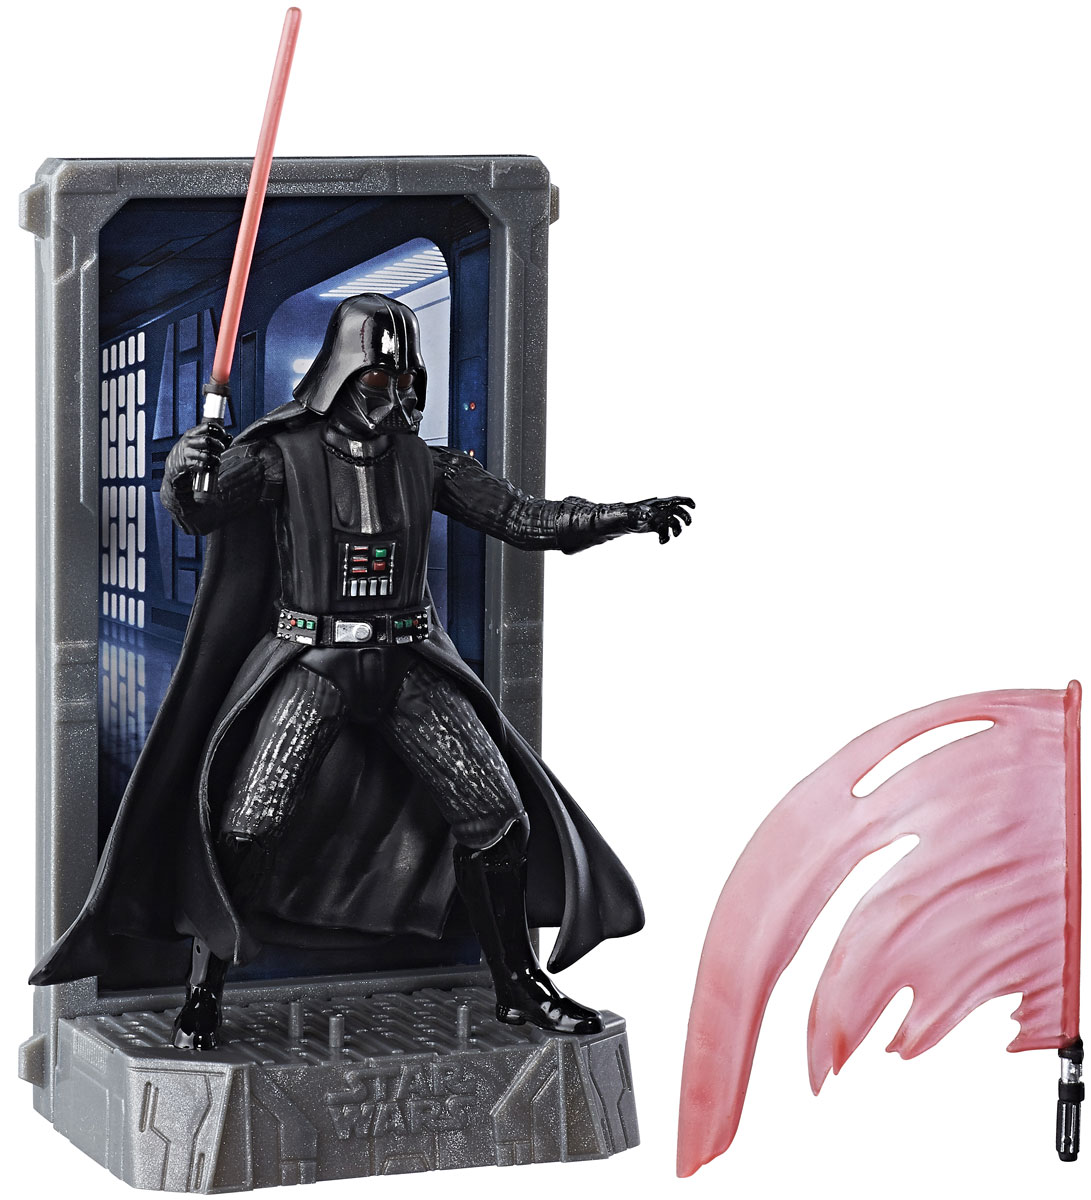 Star Wars Фигурка Black Series Darth Vader интернет магазин black star одежда